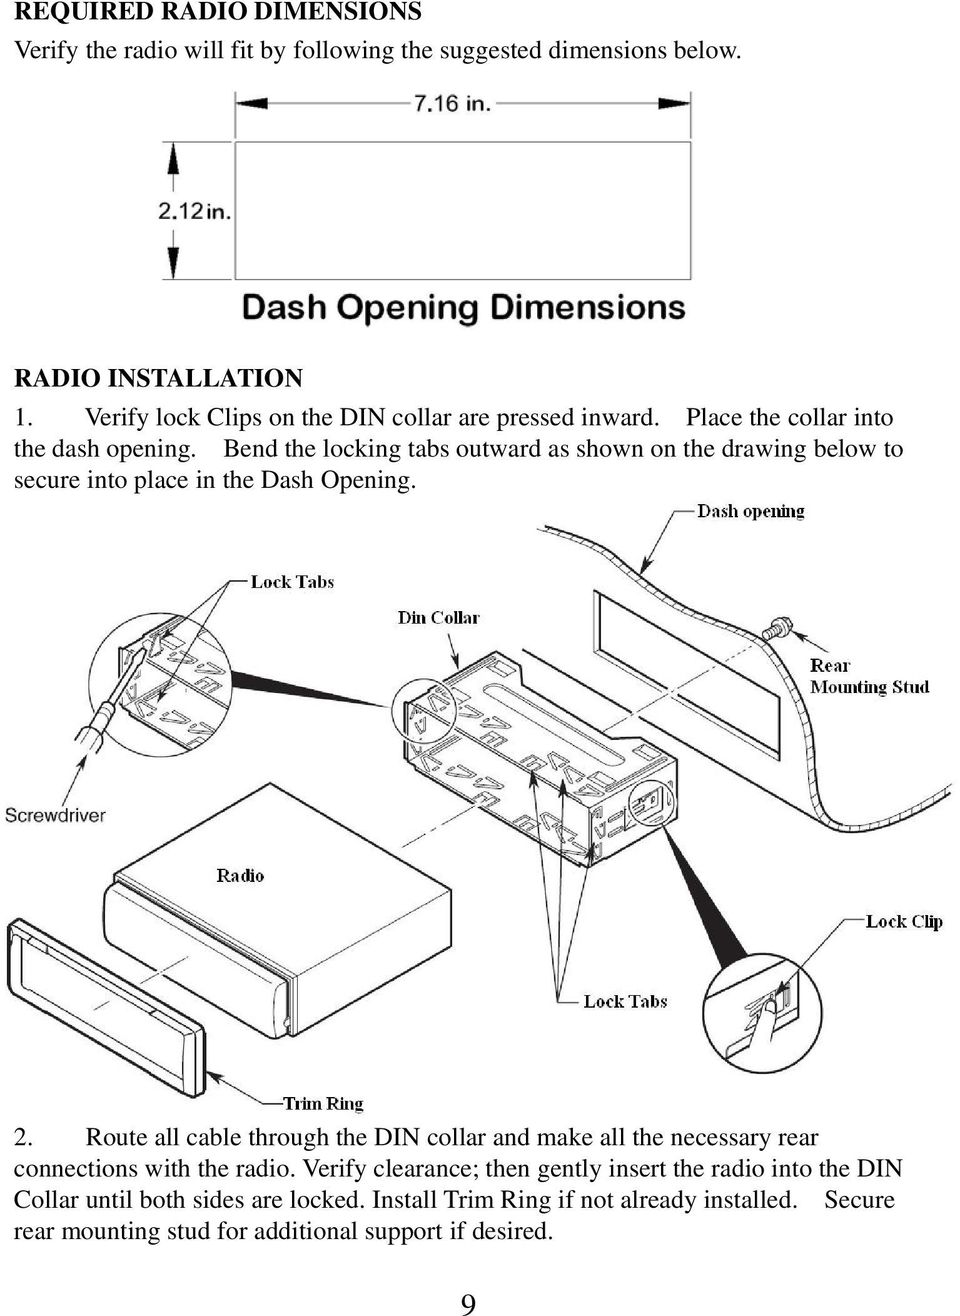 Bend the locking tabs outward as shown on the drawing below to secure into place in the Dash Opening. 2.